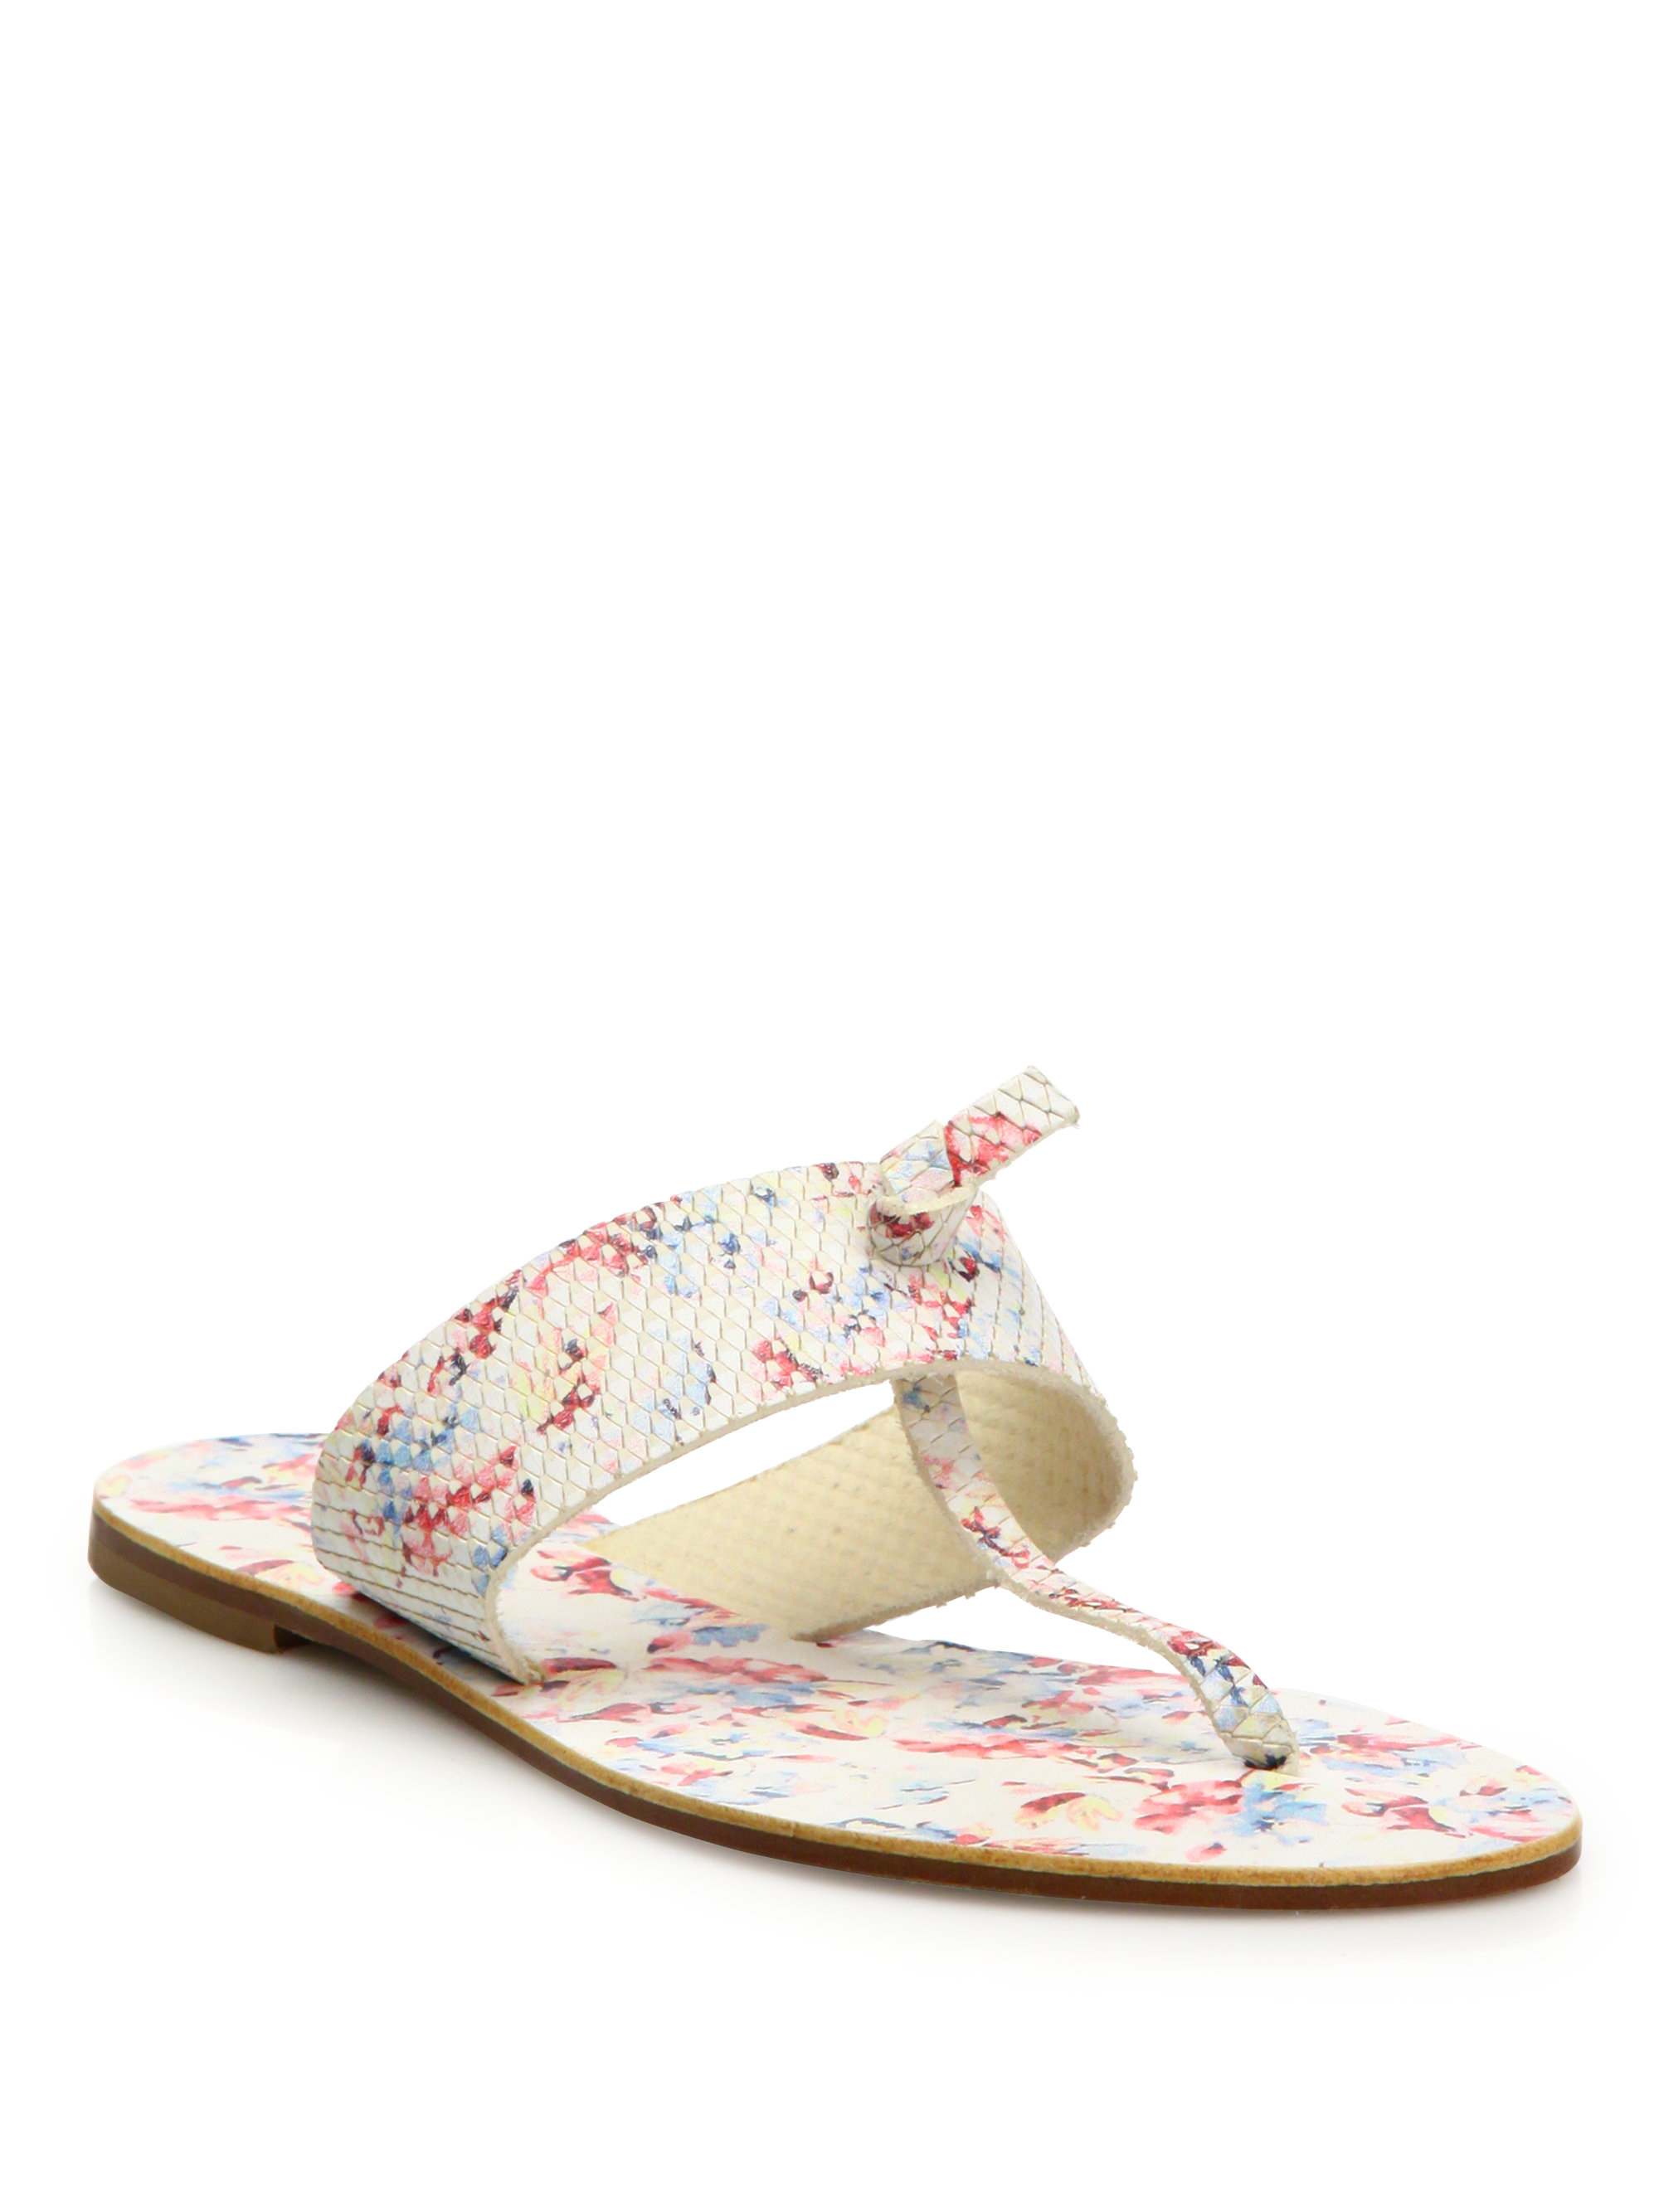 Lyst Joie Nice Floral Print Leather Thong Sandals